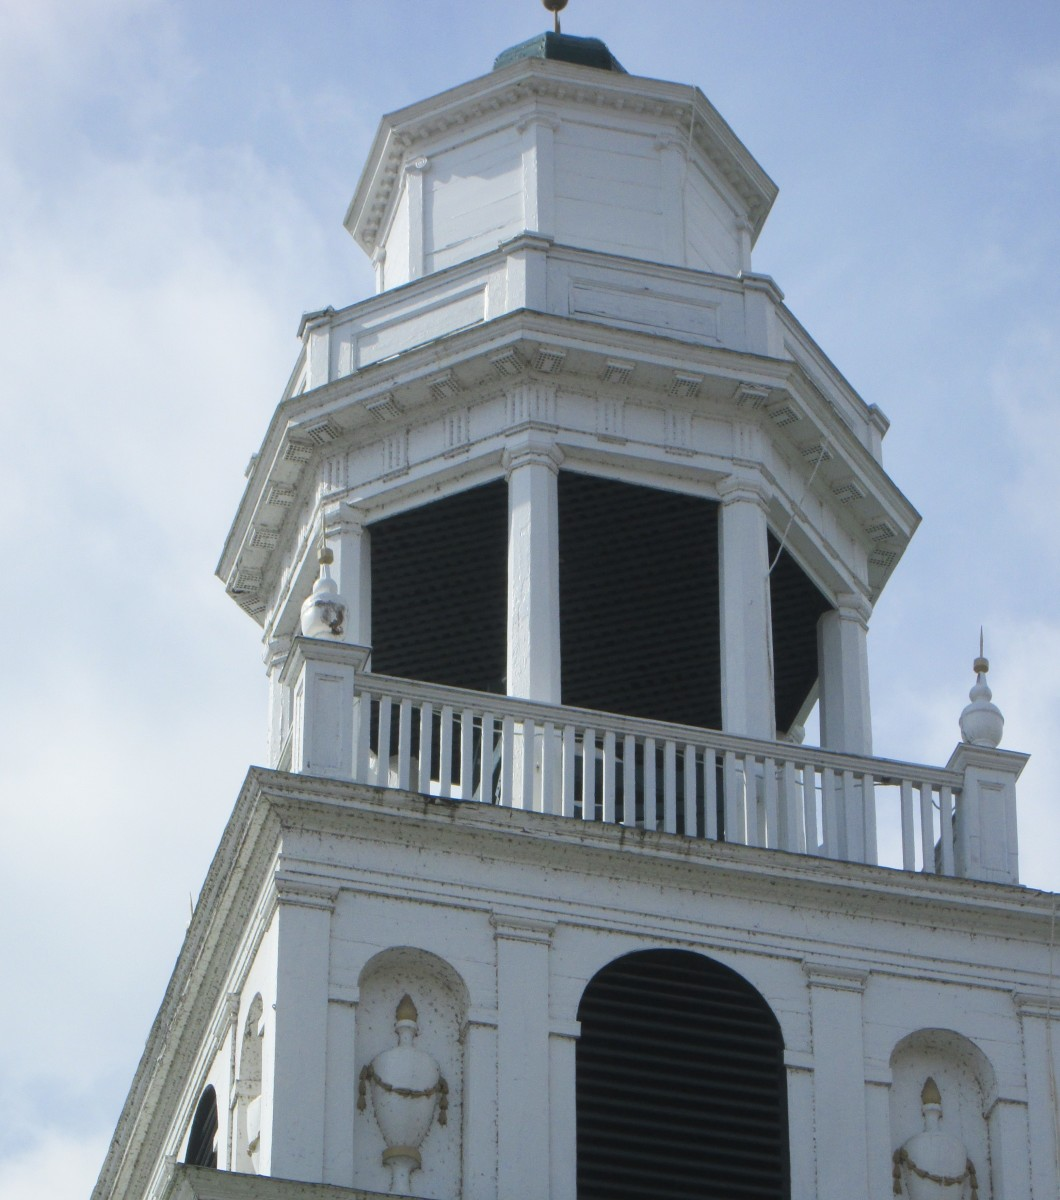 The bell tower of Old South Church (1798) in Windsor, VT, features many of the architectural elements that Asher Benjamin drew in his pattern books: pilasters, niches, urns, garlands and finials. Photo: Judy L. Hayward